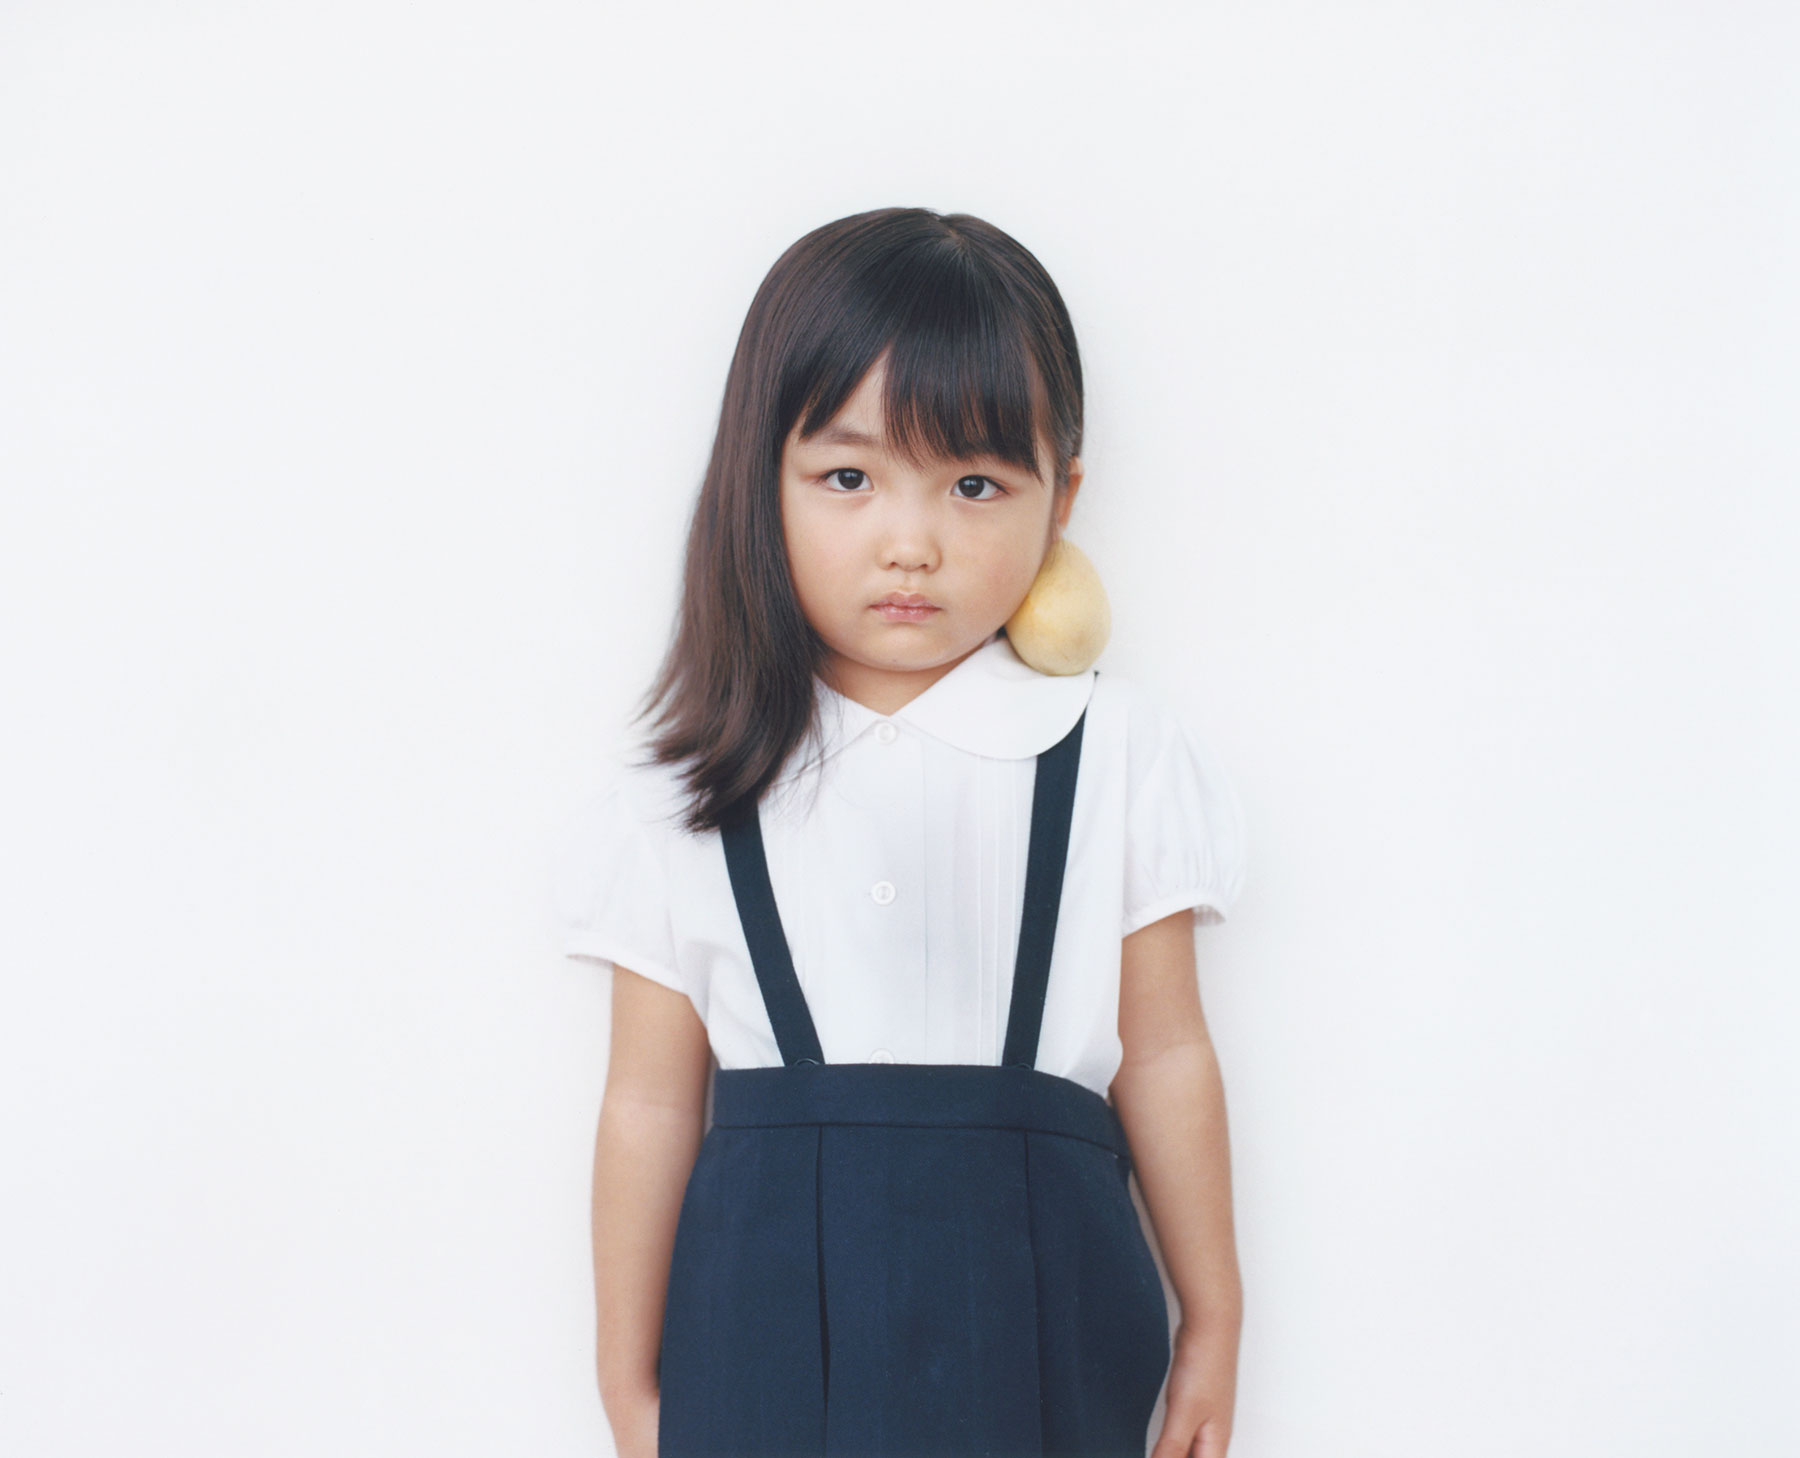 Osamu Yokonami,  1000 Children: Mango No. 16 , 2010-2013  Digital pigment print, 895 x 1105 mm (approx. 35 x 43.5 in), edition of 5; 146 x 168 mm (approx. 5.75 x 6.6 in), edition of 10   Inquire